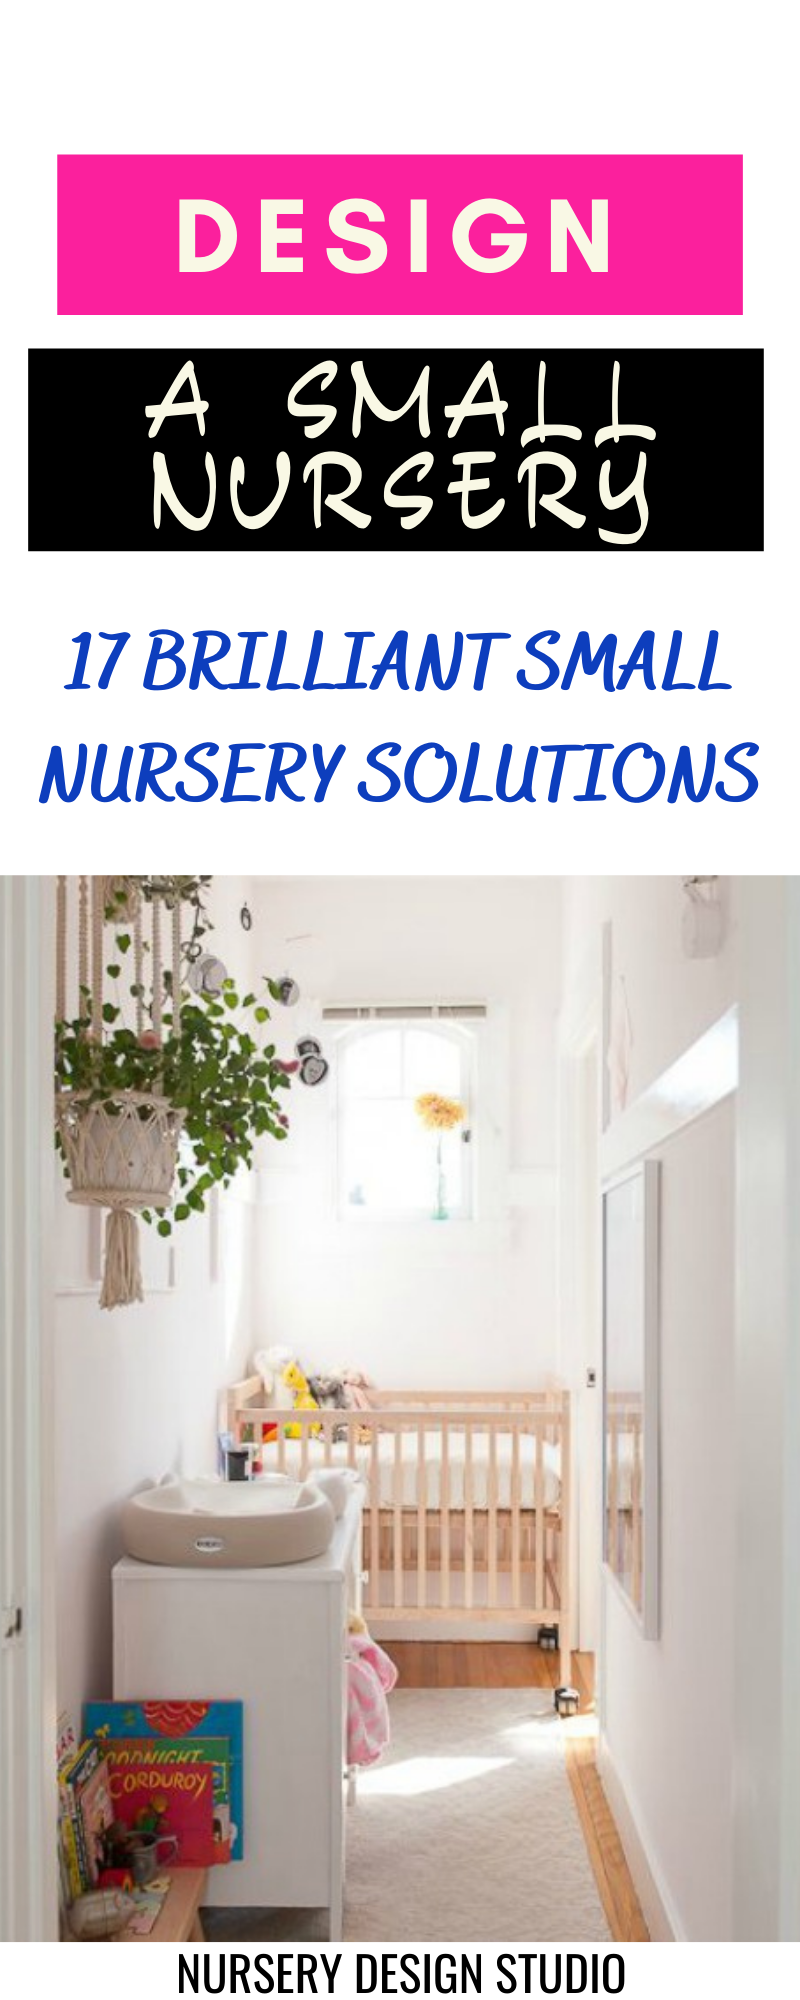 small nursery solutions